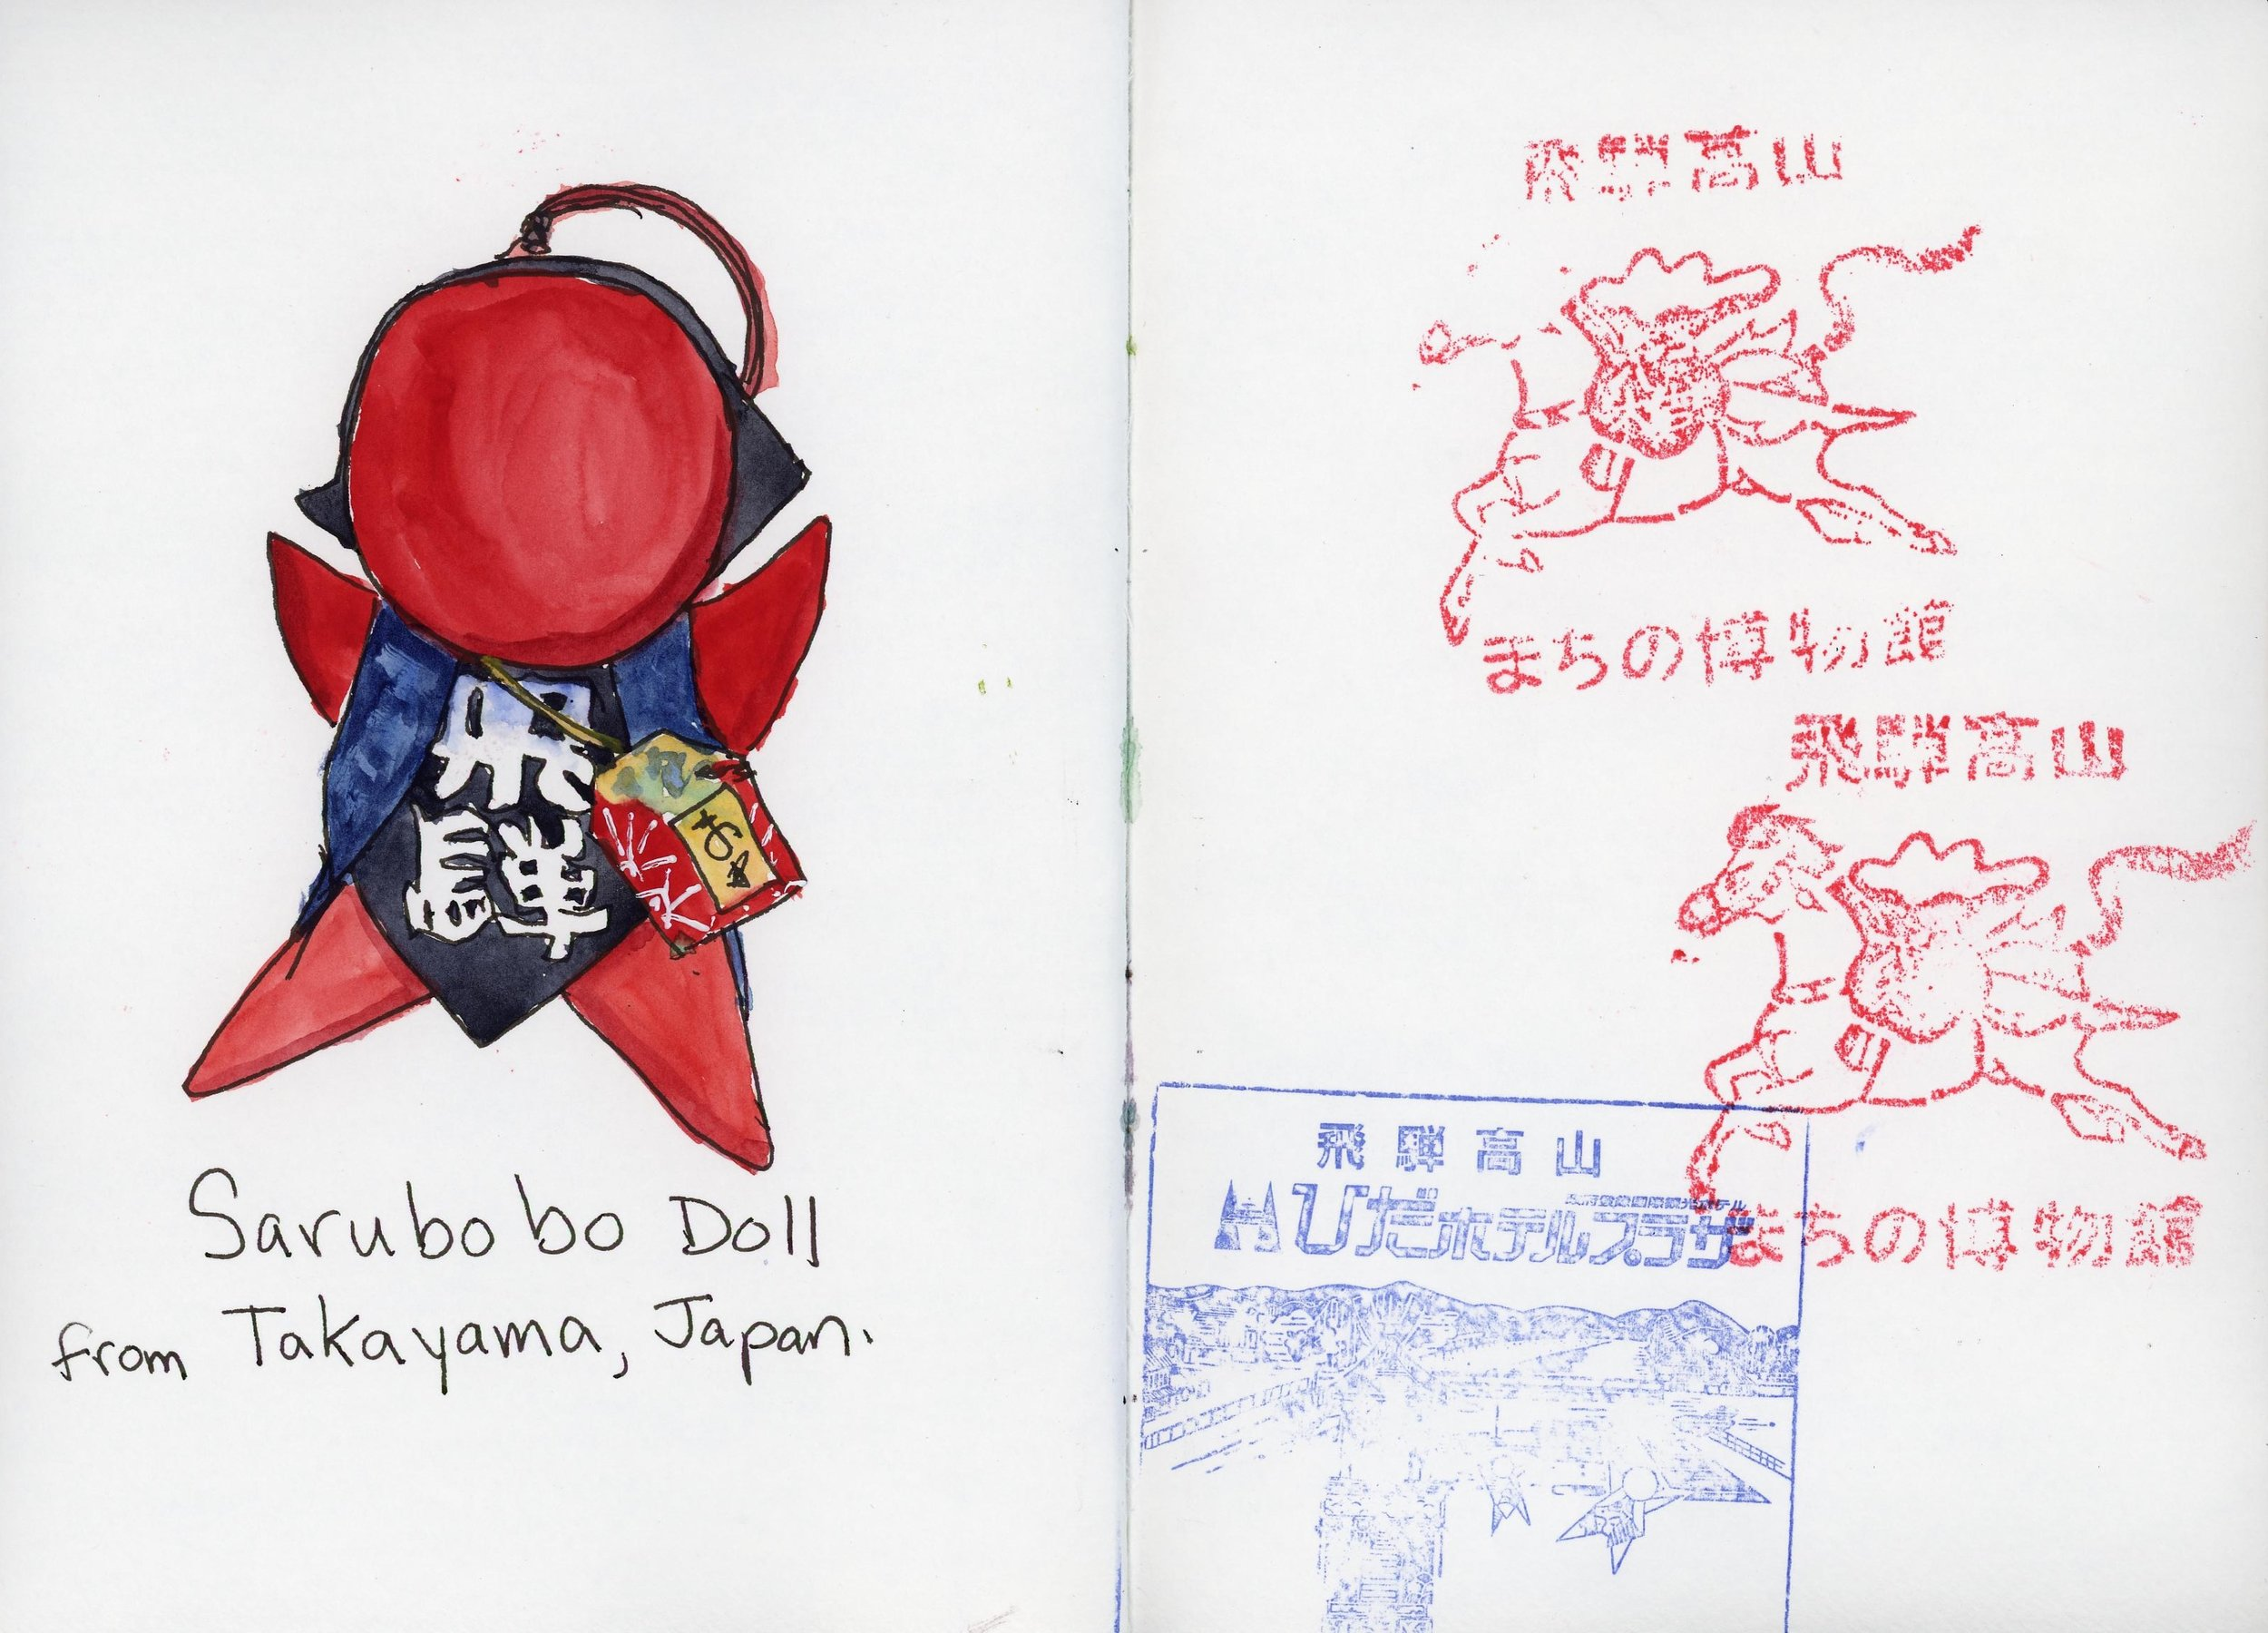 This Sarubobo Doll is a folkcraft supposed to represent a monkey. They were frequently made by Japanese Grandmothers and given to their grandchildren for good luck/good fortune. Depending on the color they can be for good wishes in school, work, love, and more. The red was the most common and I think it is for a sort of general good fortune.